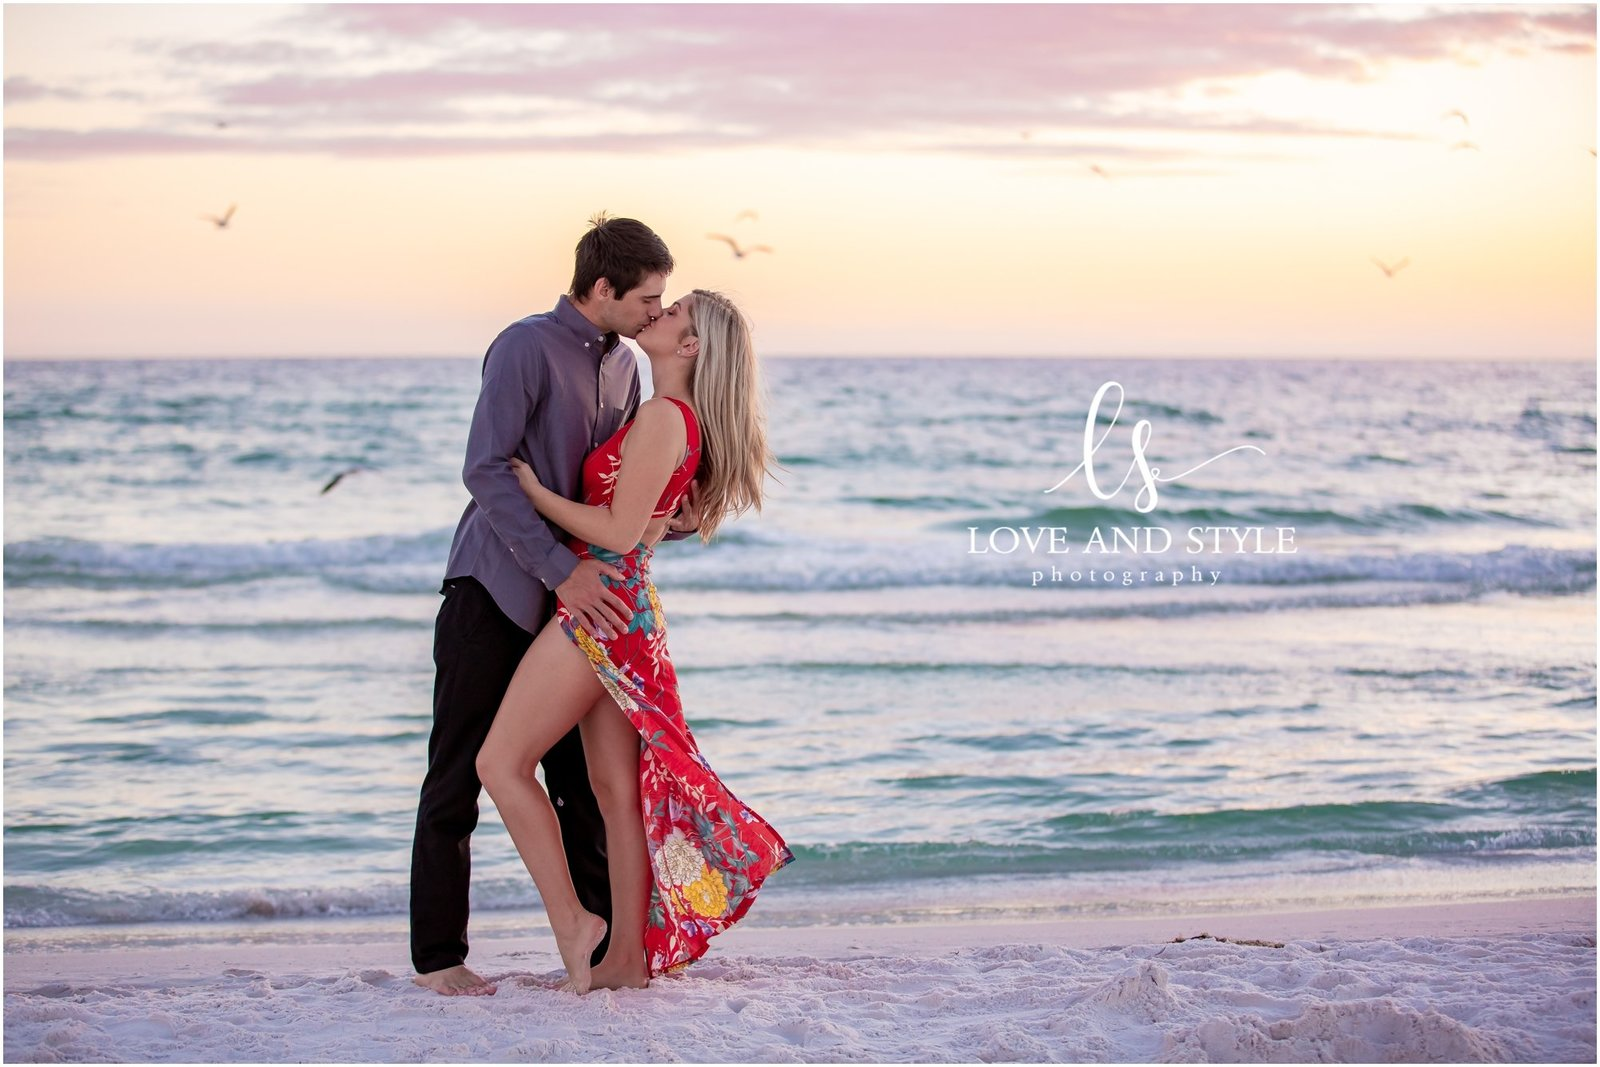 Engagement Photography on Siesta Key Beach, Florida